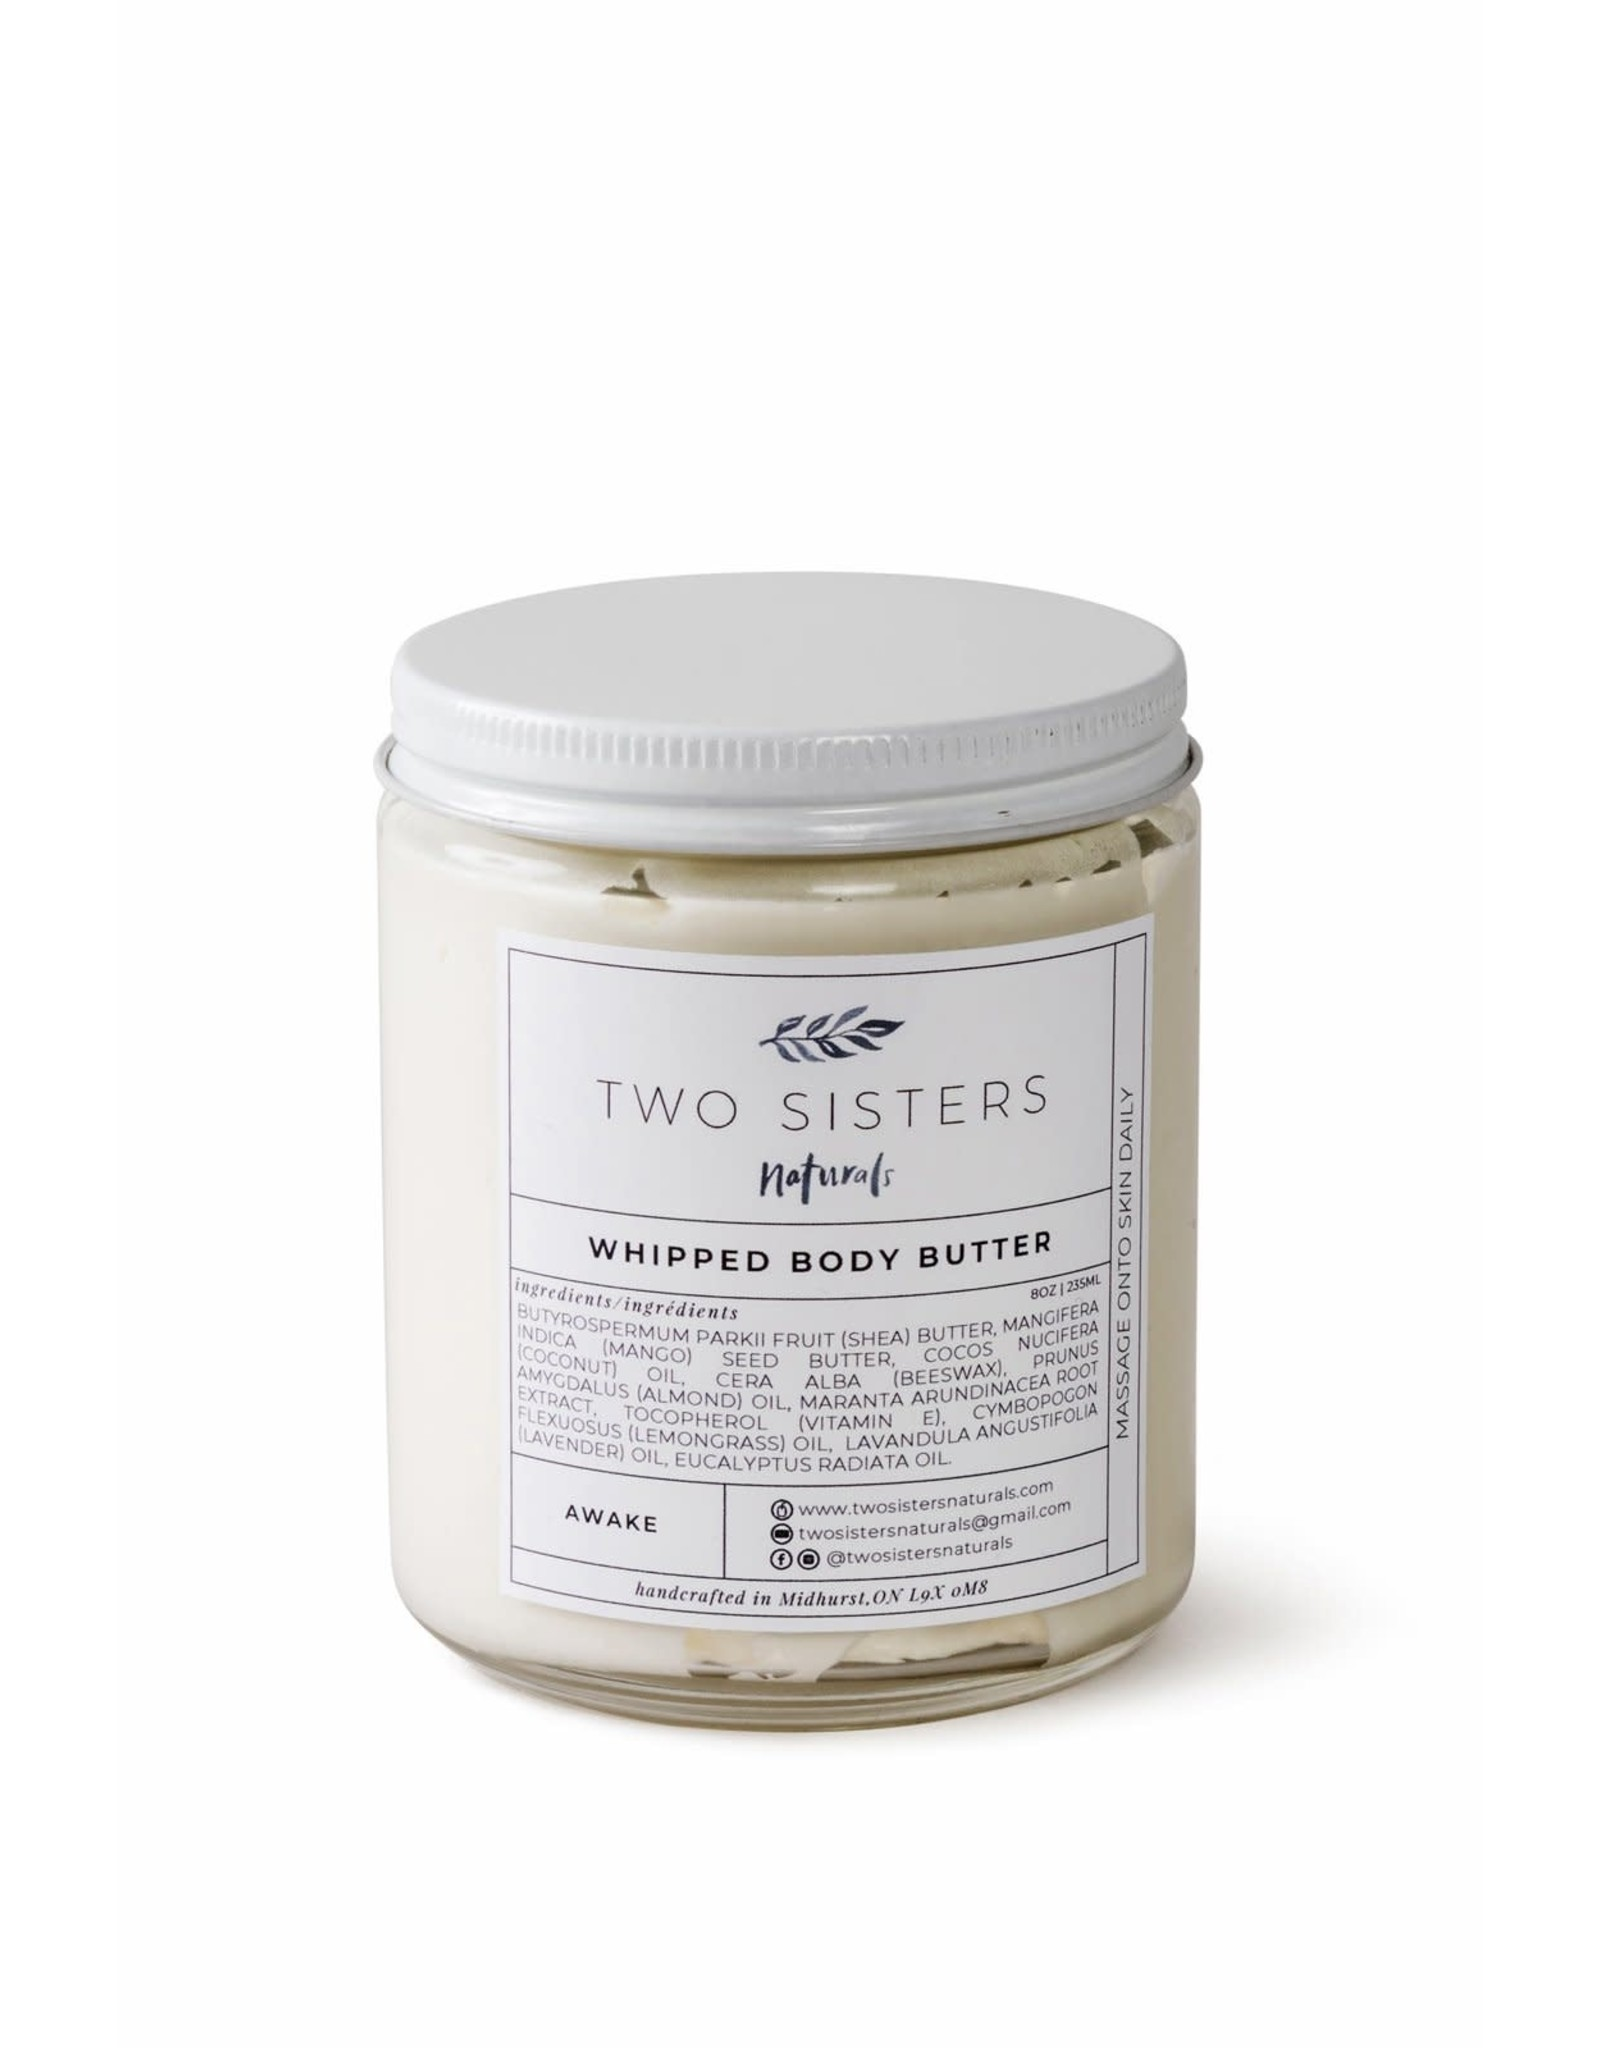 Two Sisters Naturals Whipped Body Butter by Two Sisters Naturals